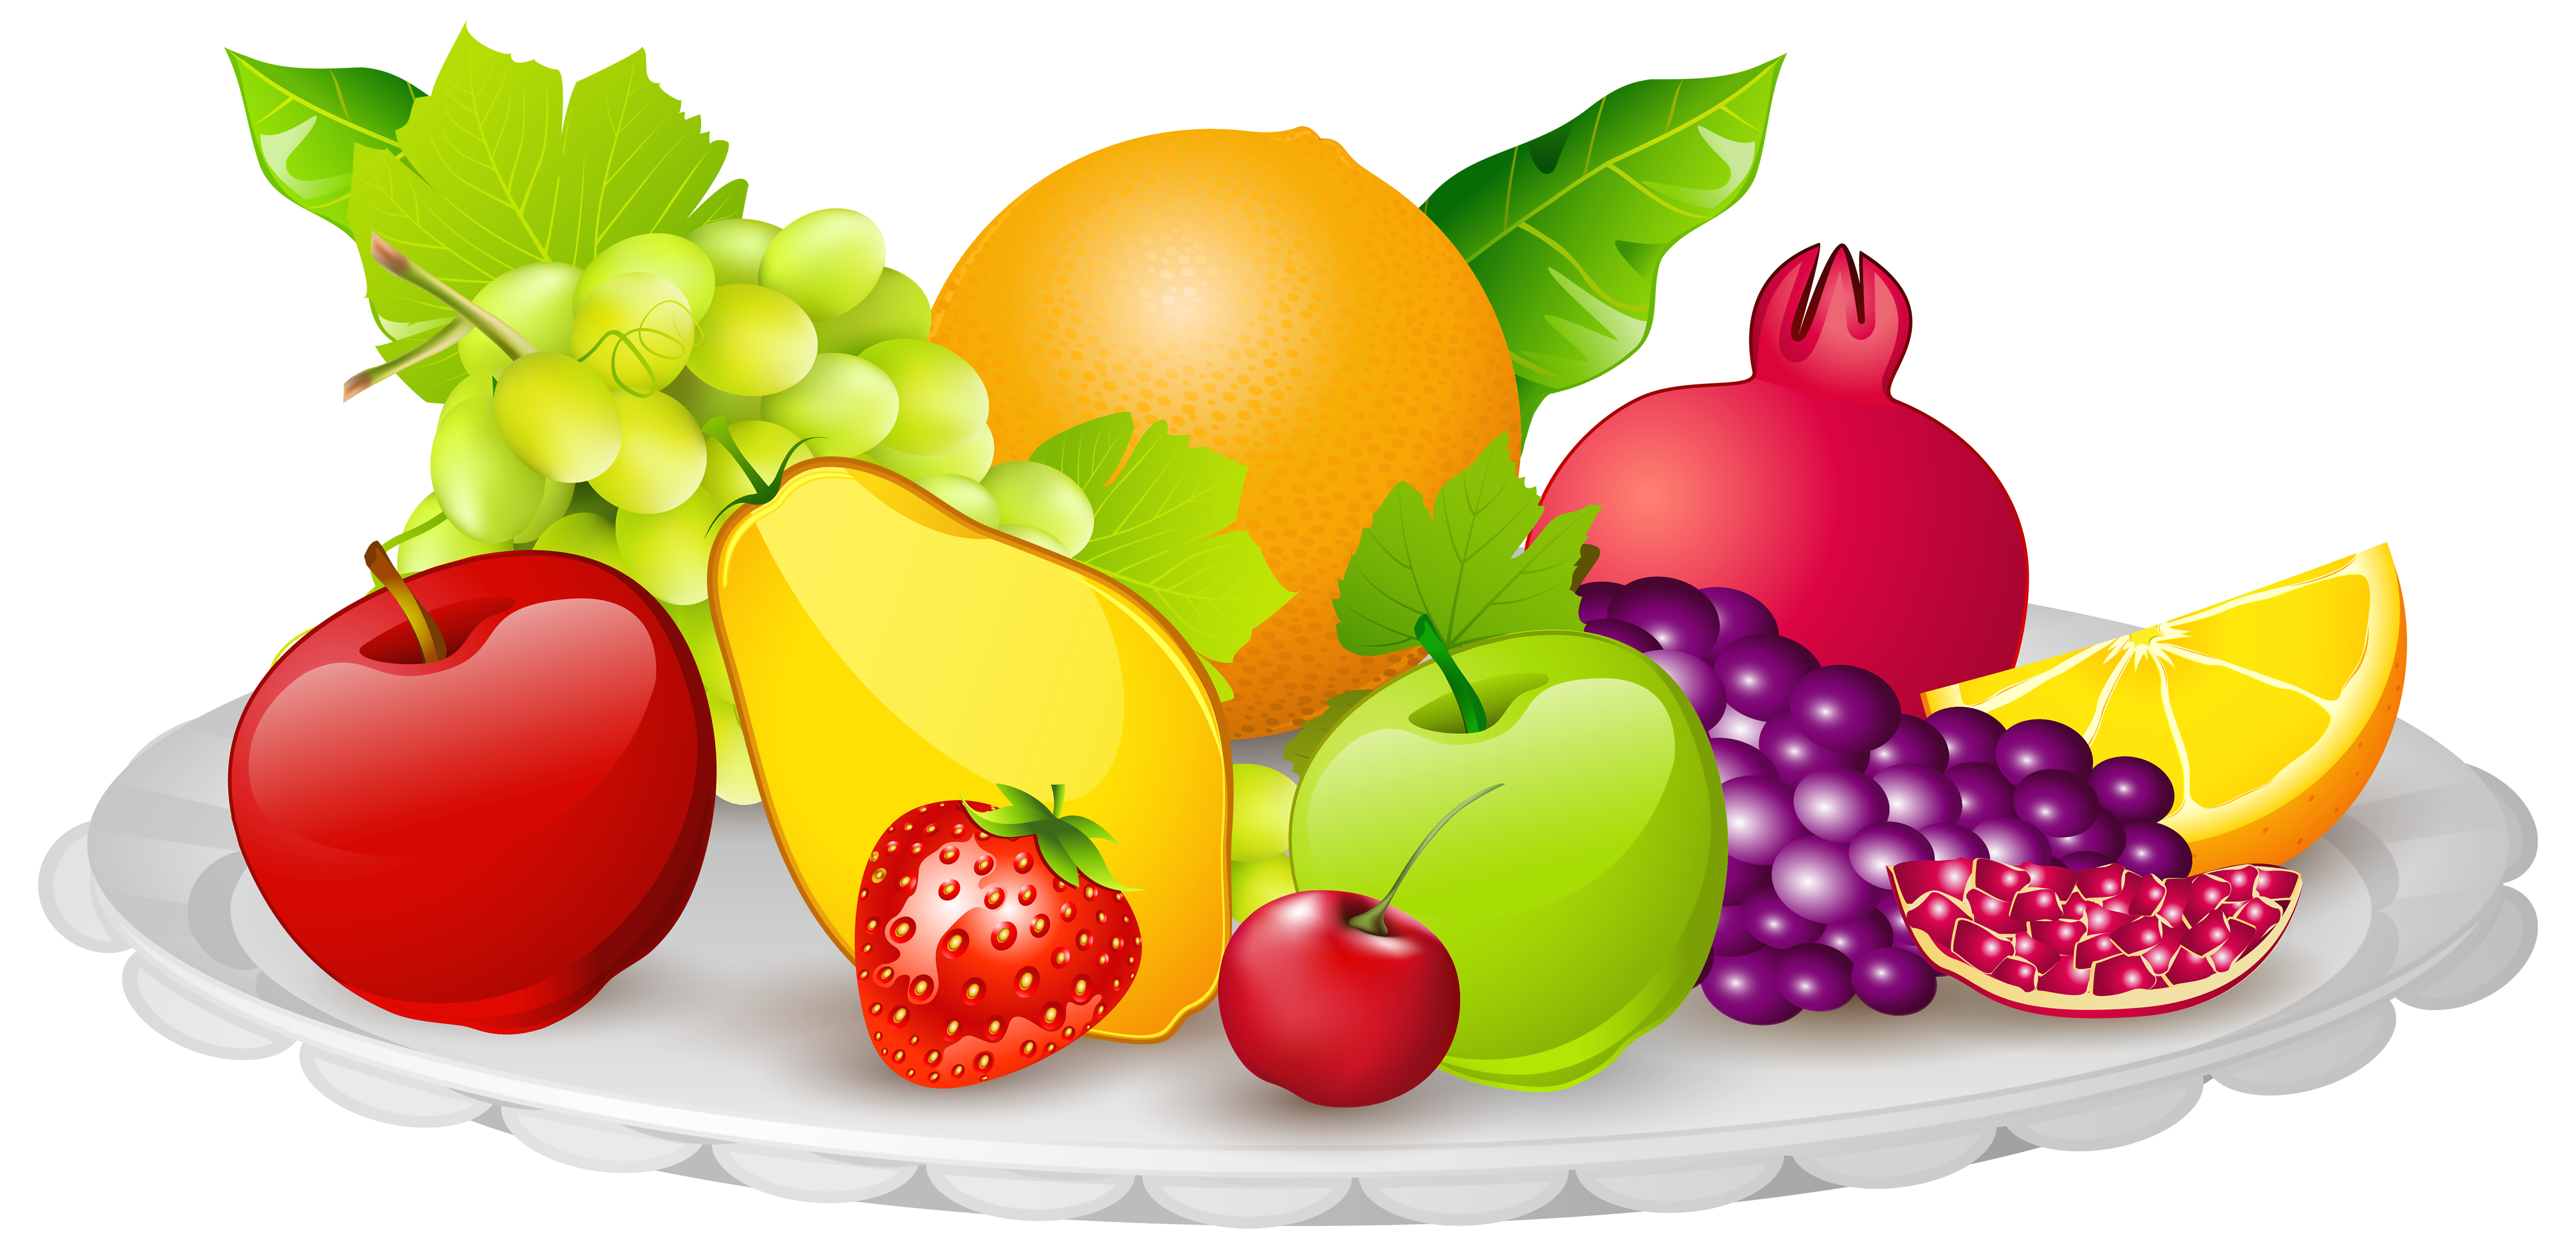 Plate with png image. Fruits clipart svg transparent